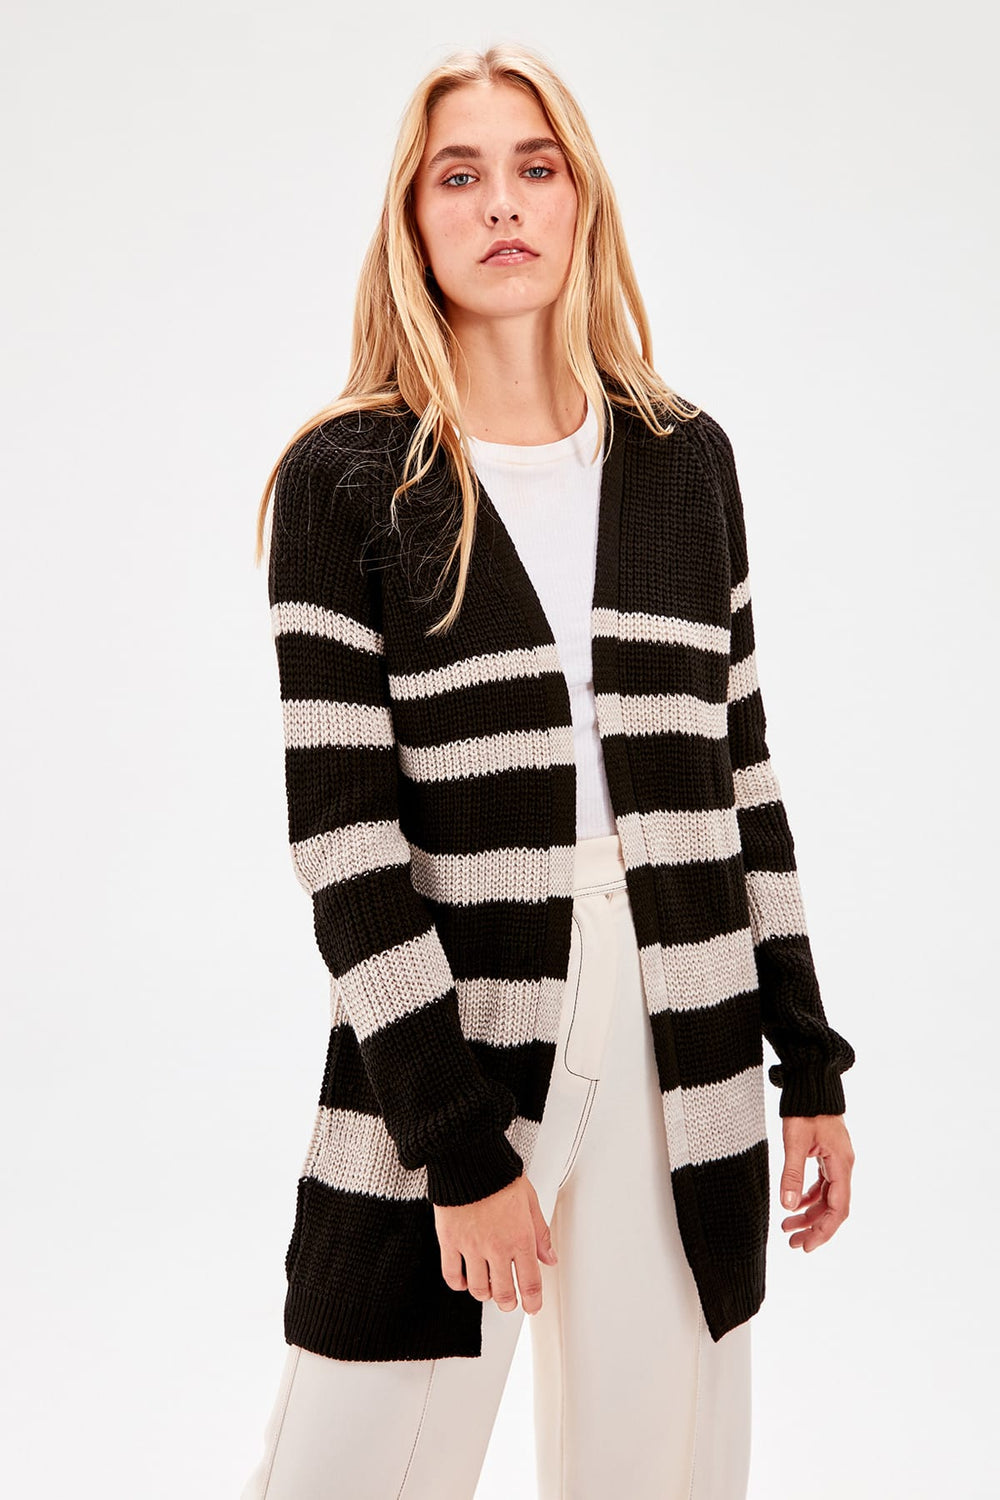 Miss Zut Miss Zut Black Striped Sweater Cardigan Miss Zut &CO